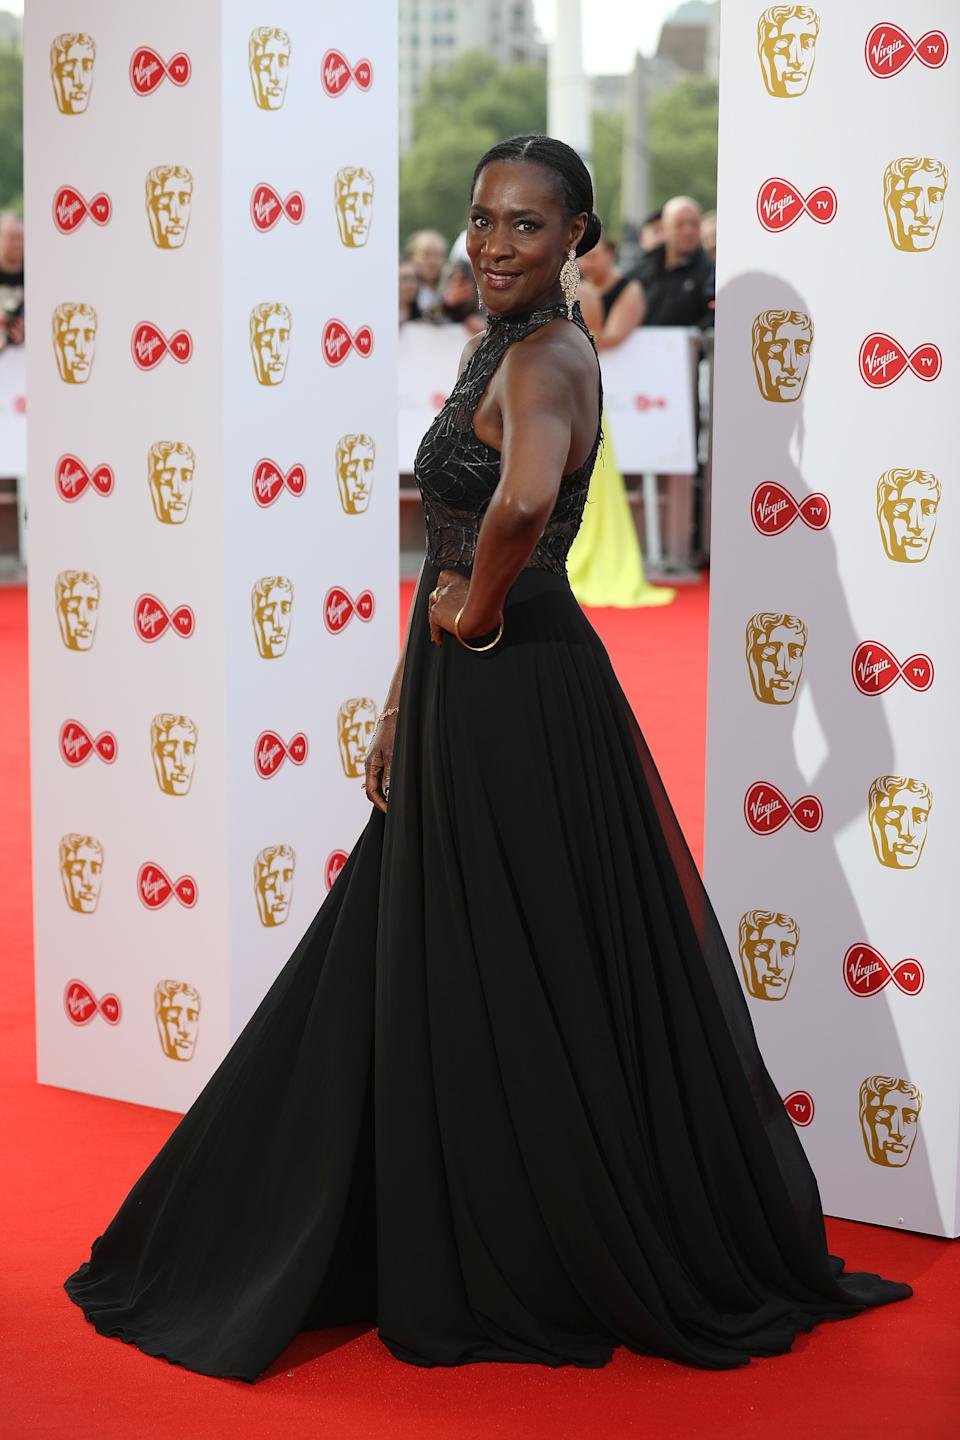 LONDON, ENGLAND - MAY 13: Jacqueline Abrahams attends the Virgin TV British Academy Television Awards at The Royal Festival Hall on May 13, 2018 in London, England. (Photo by Tim Whitby/Getty Images)